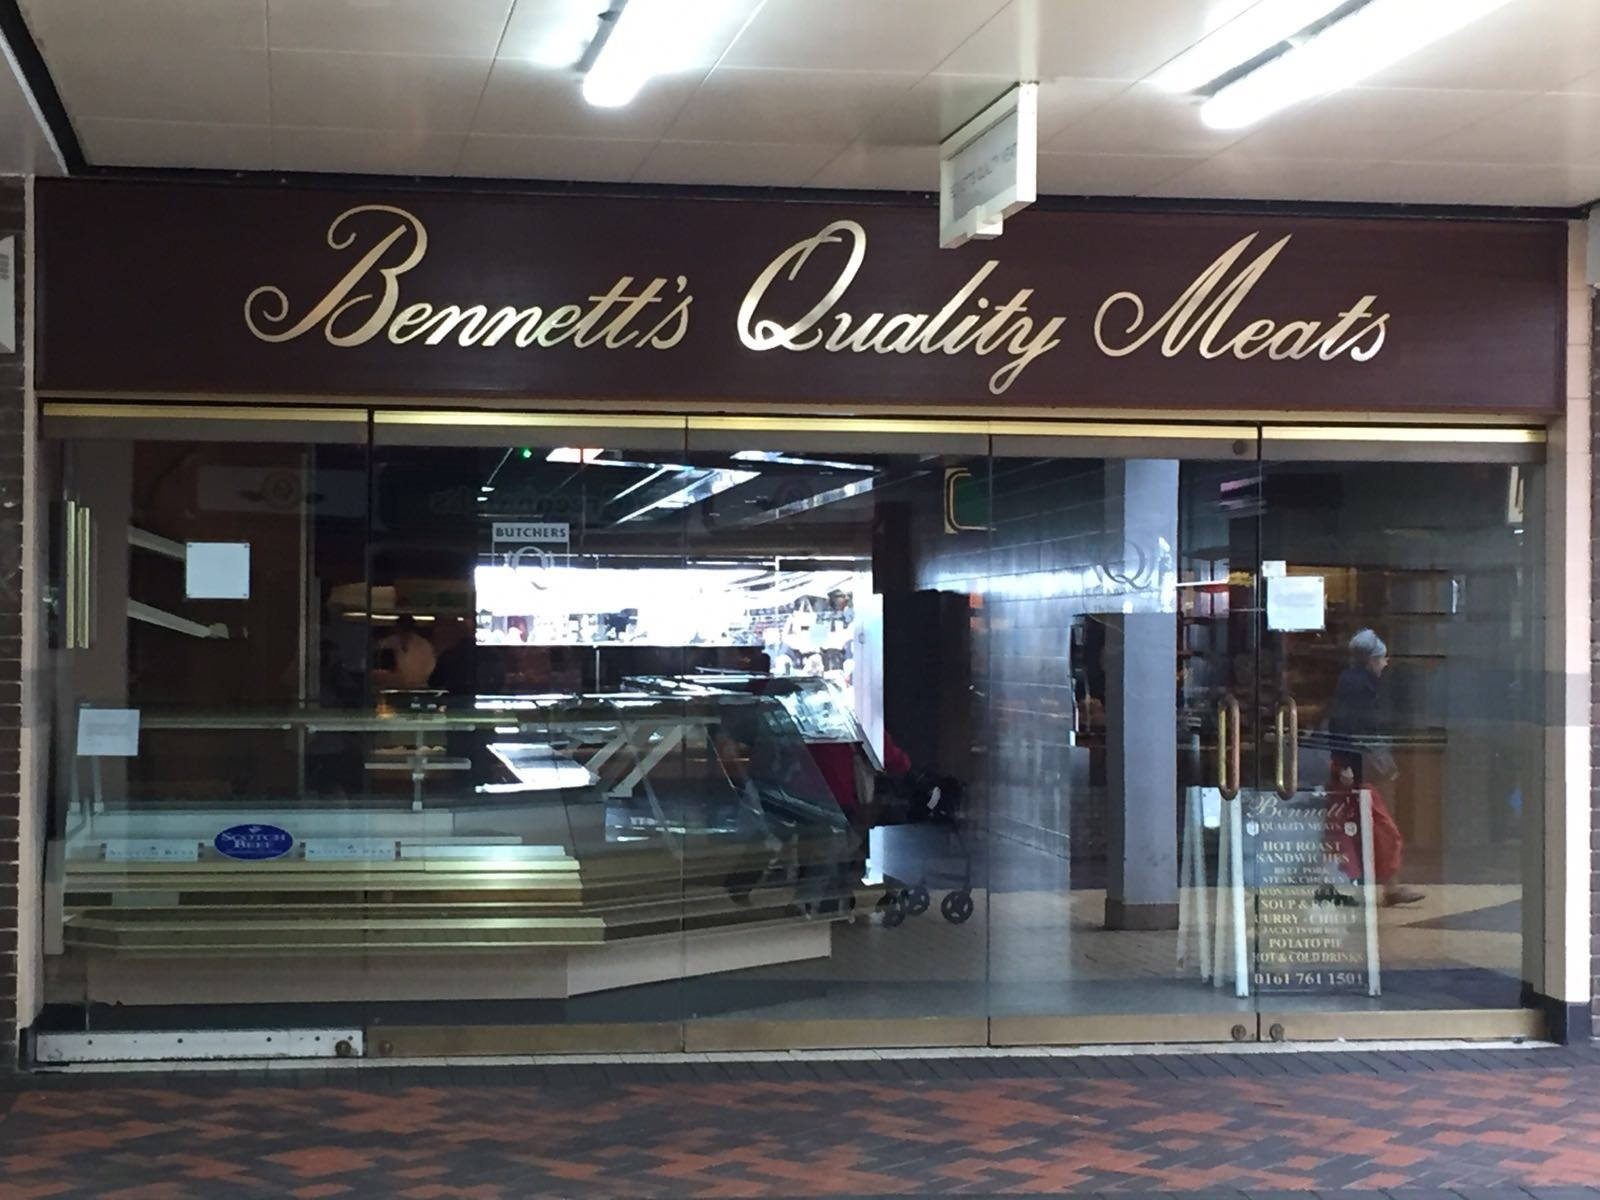 Bennett's Quality Meats in Princess Parade, Bury